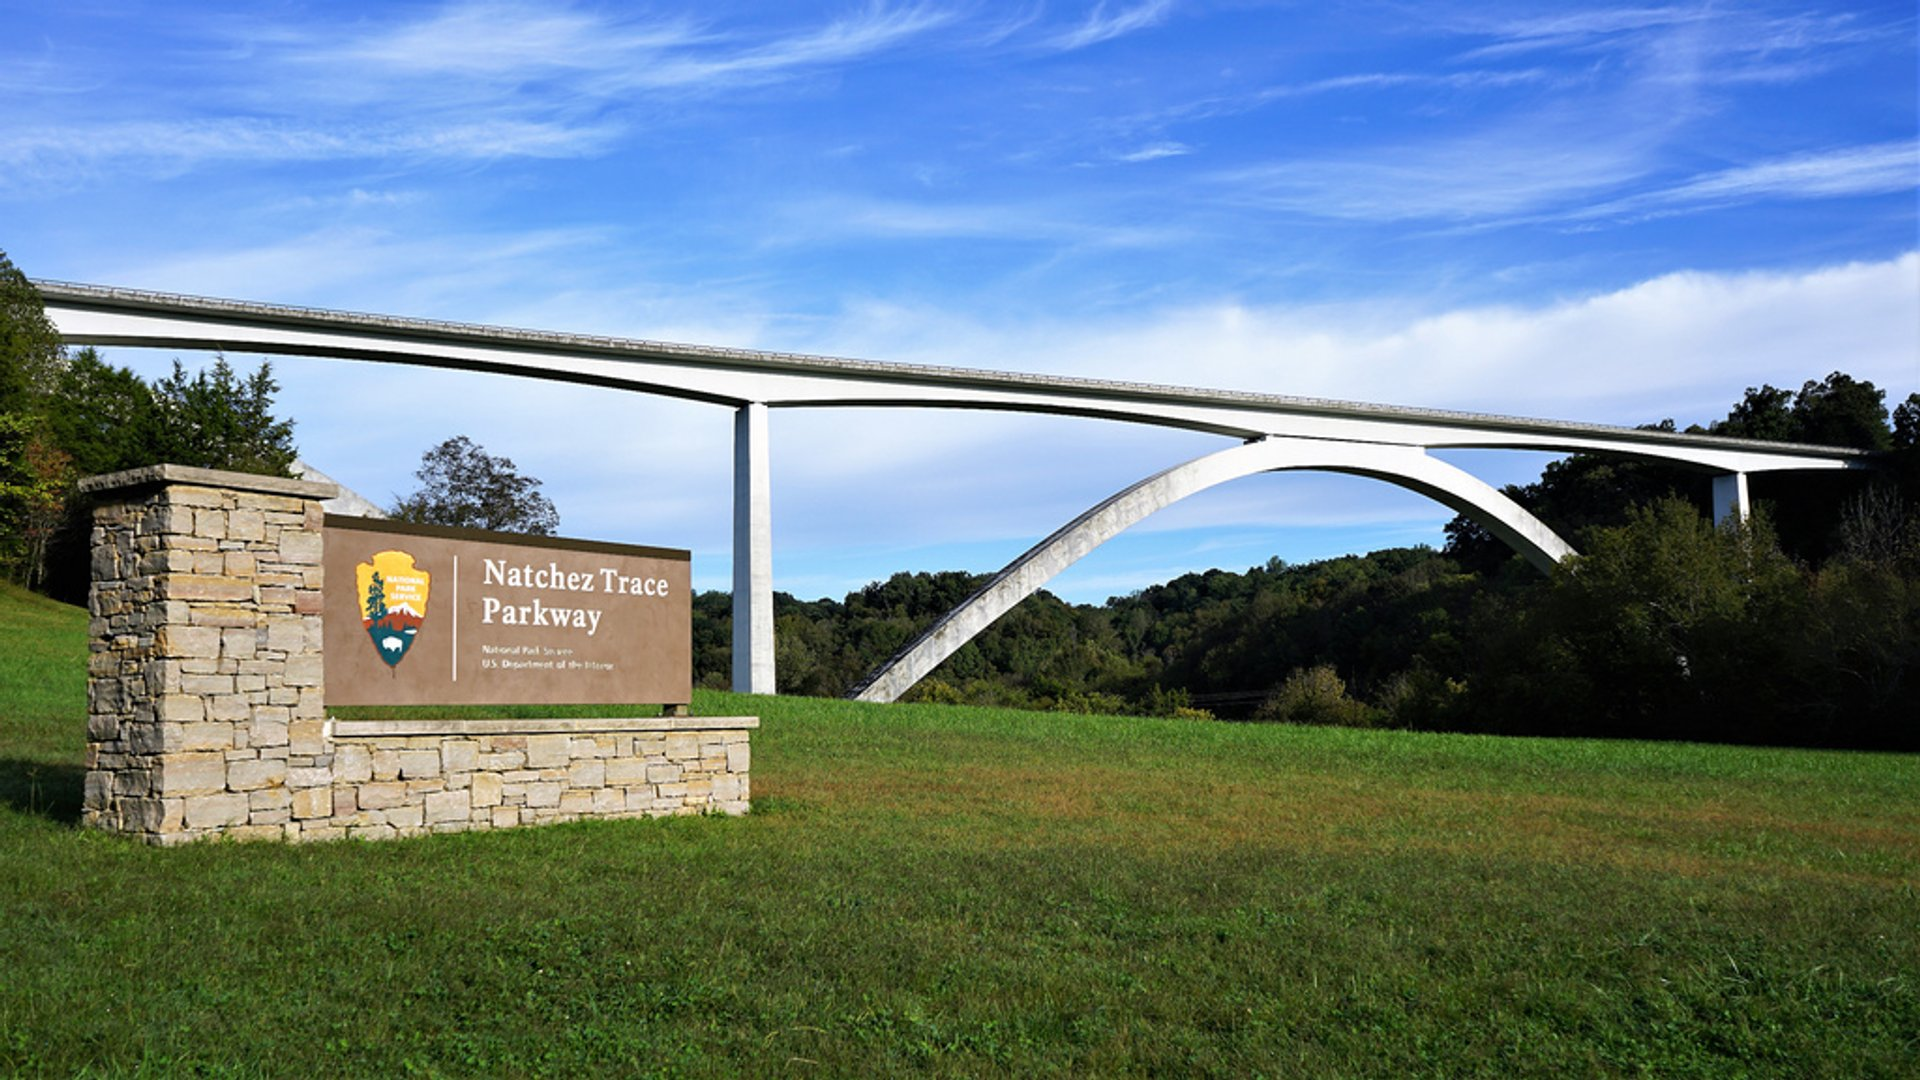 Natchez Trace Parkway in Tennessee 2019 - Best Time